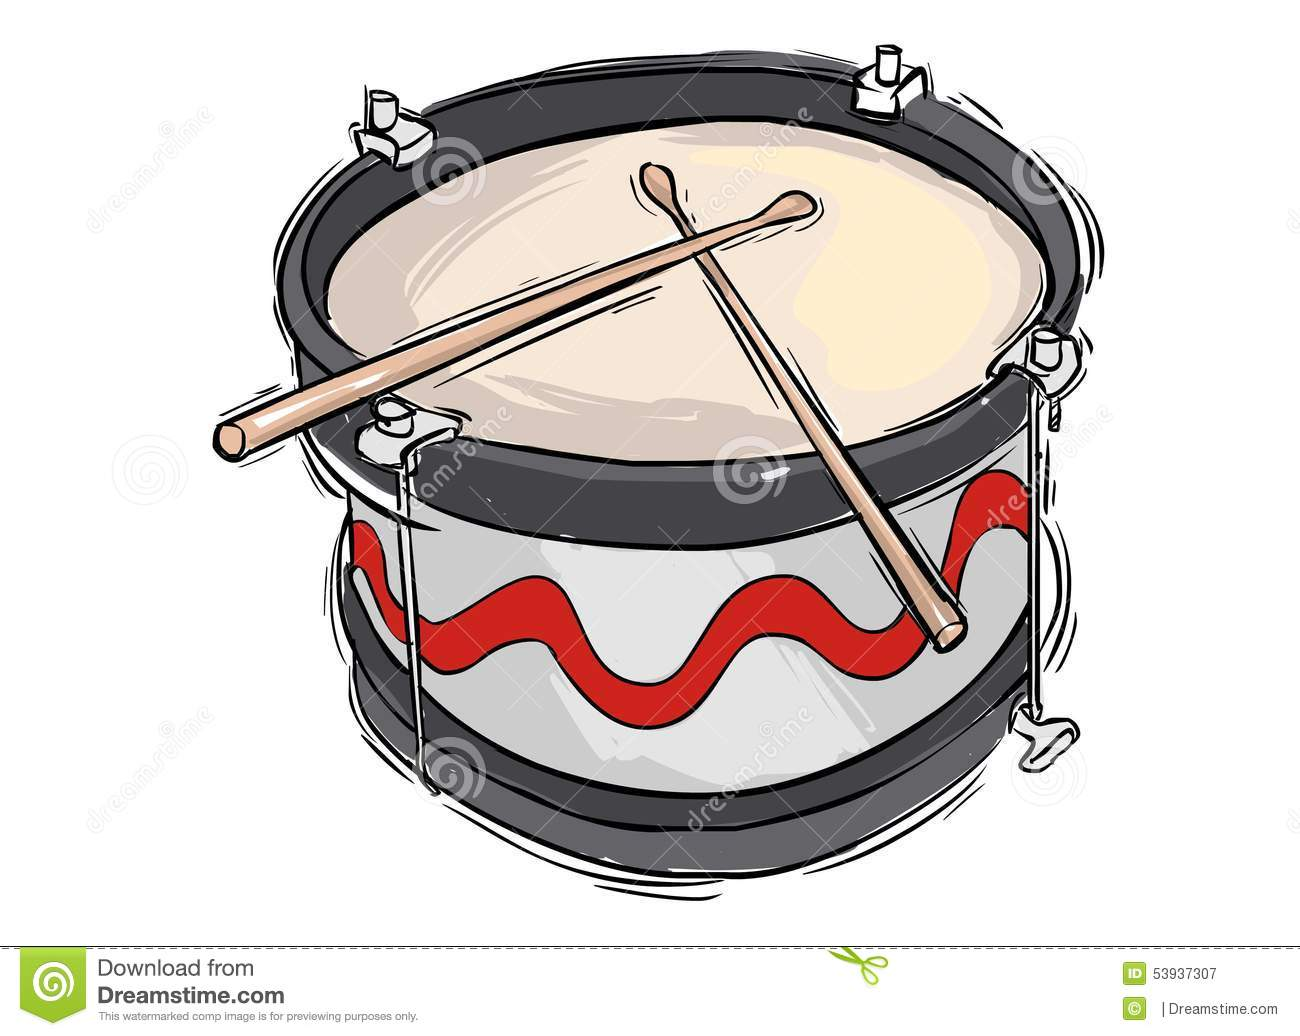 Snare Drum Royalty Free Vector